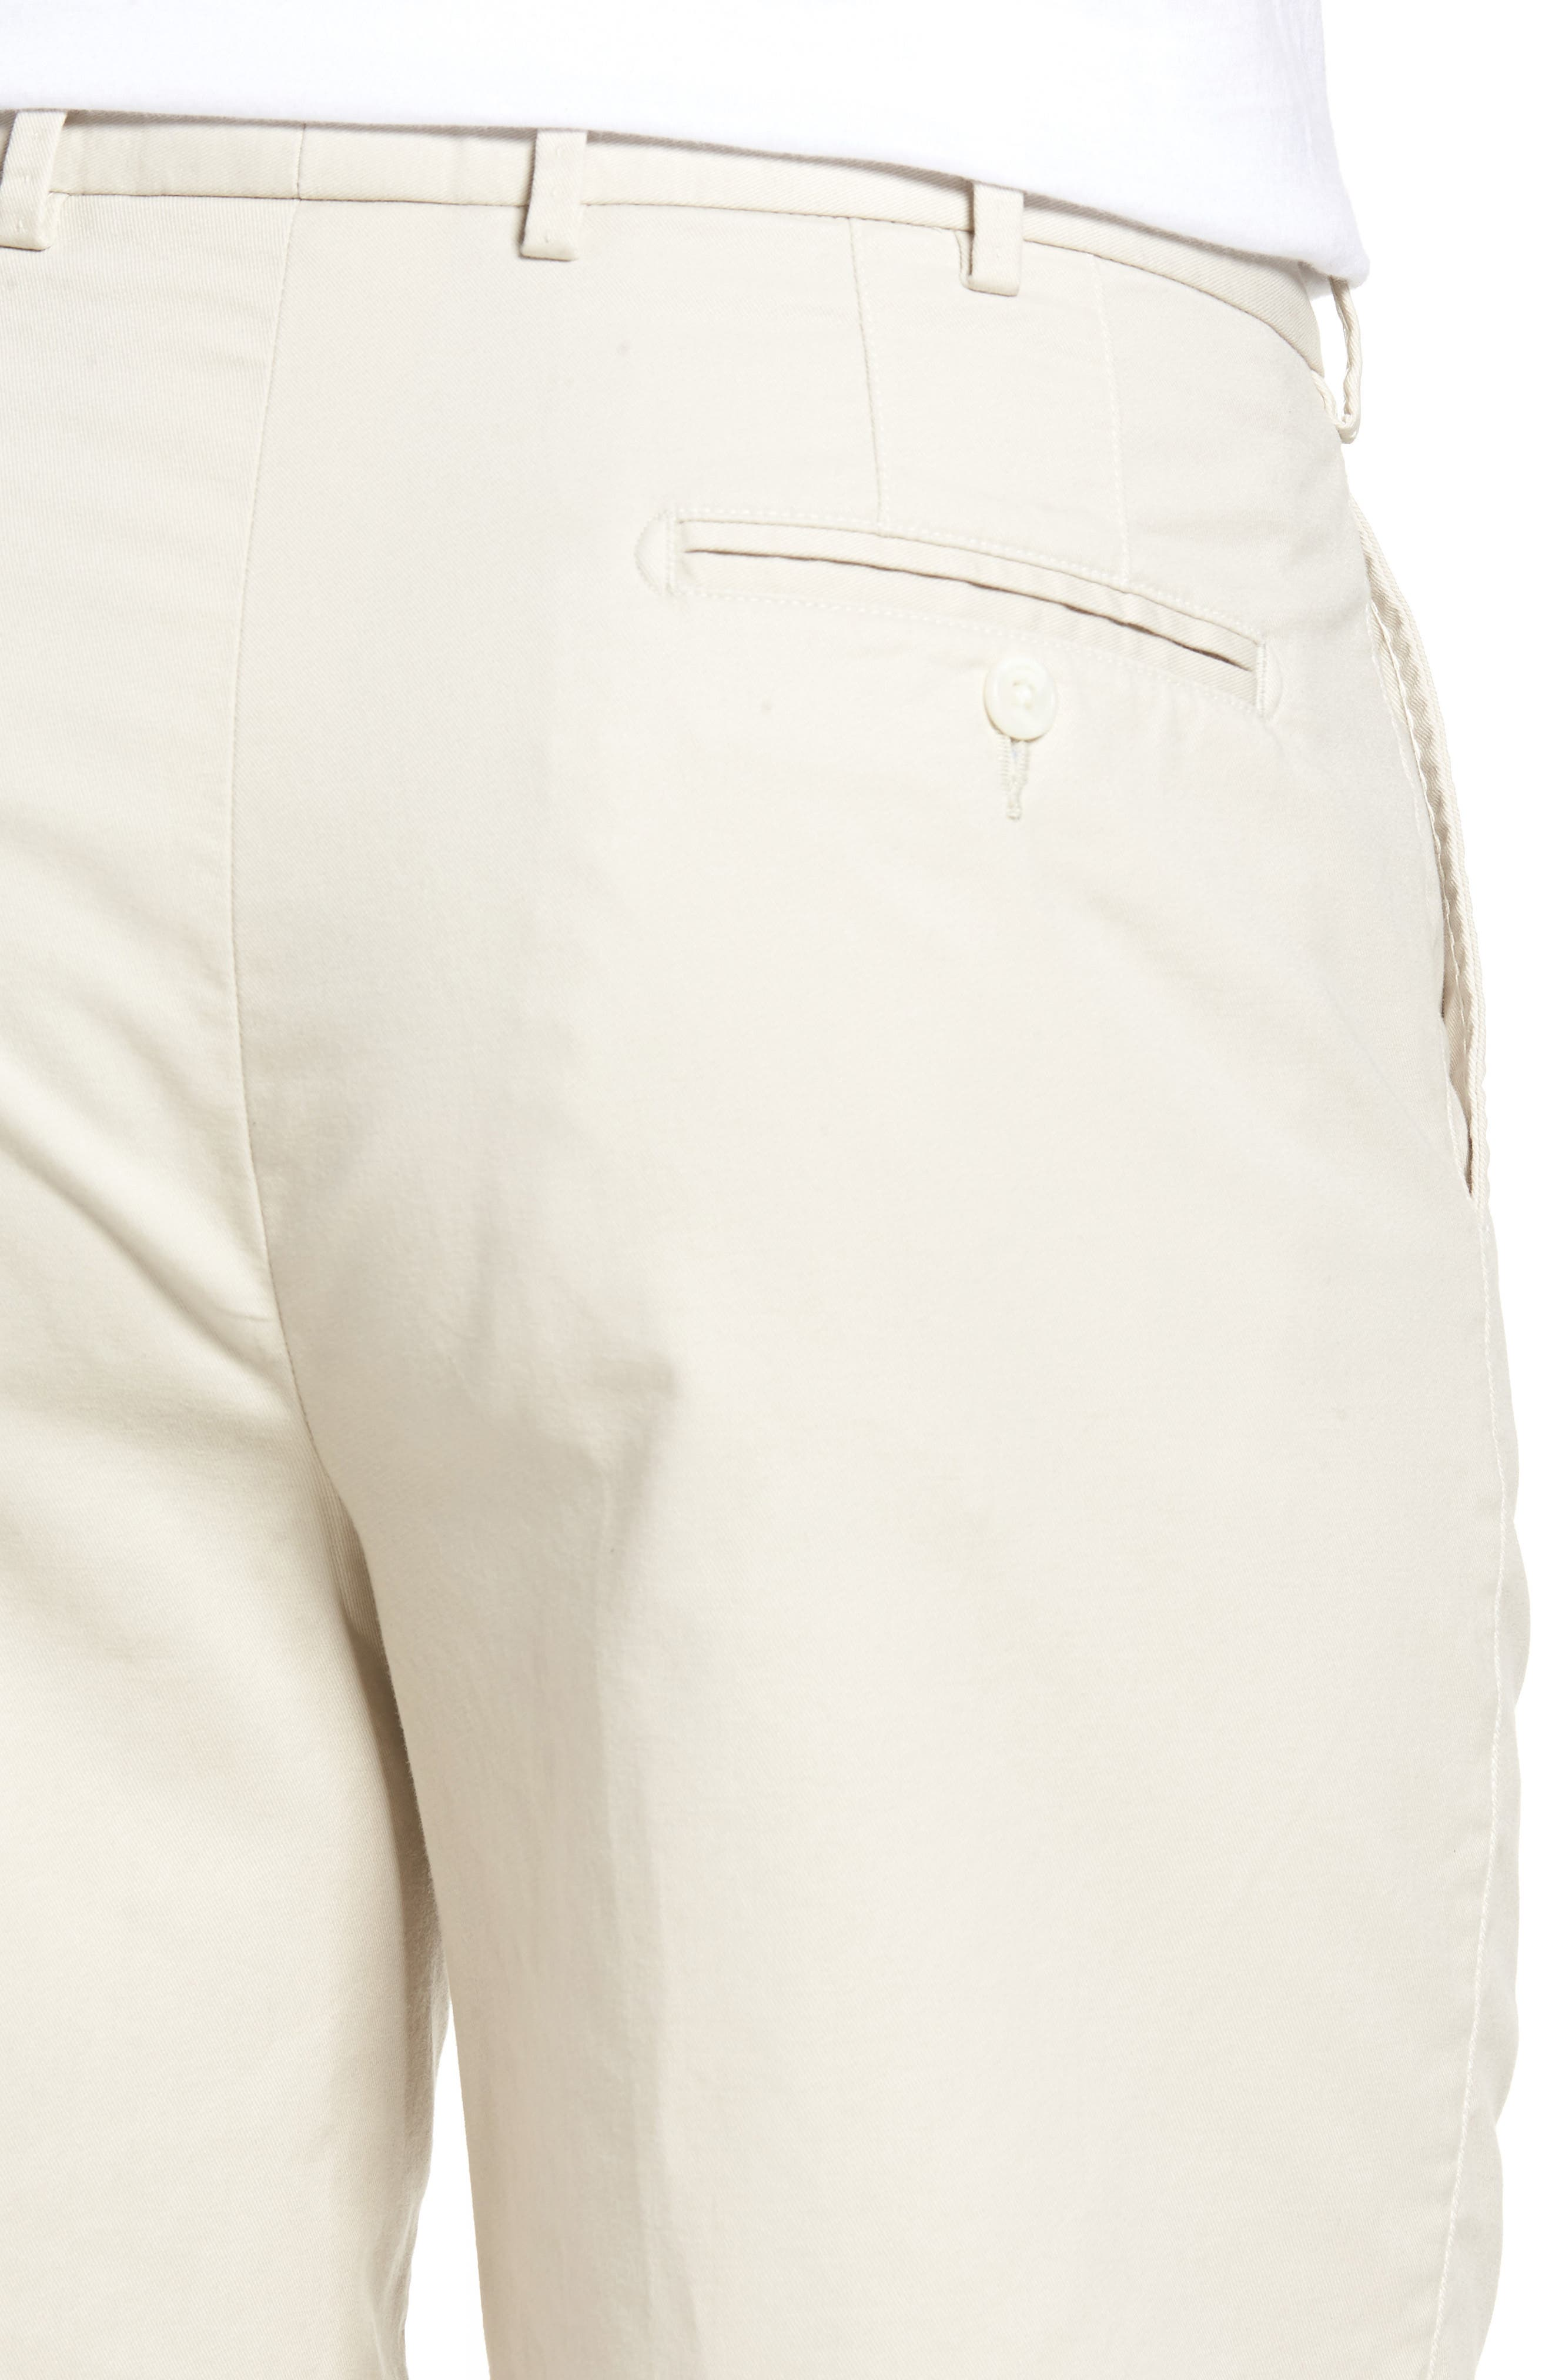 Alternate Image 4  - Peter Millar Soft Touch Twill Shorts (Tall)